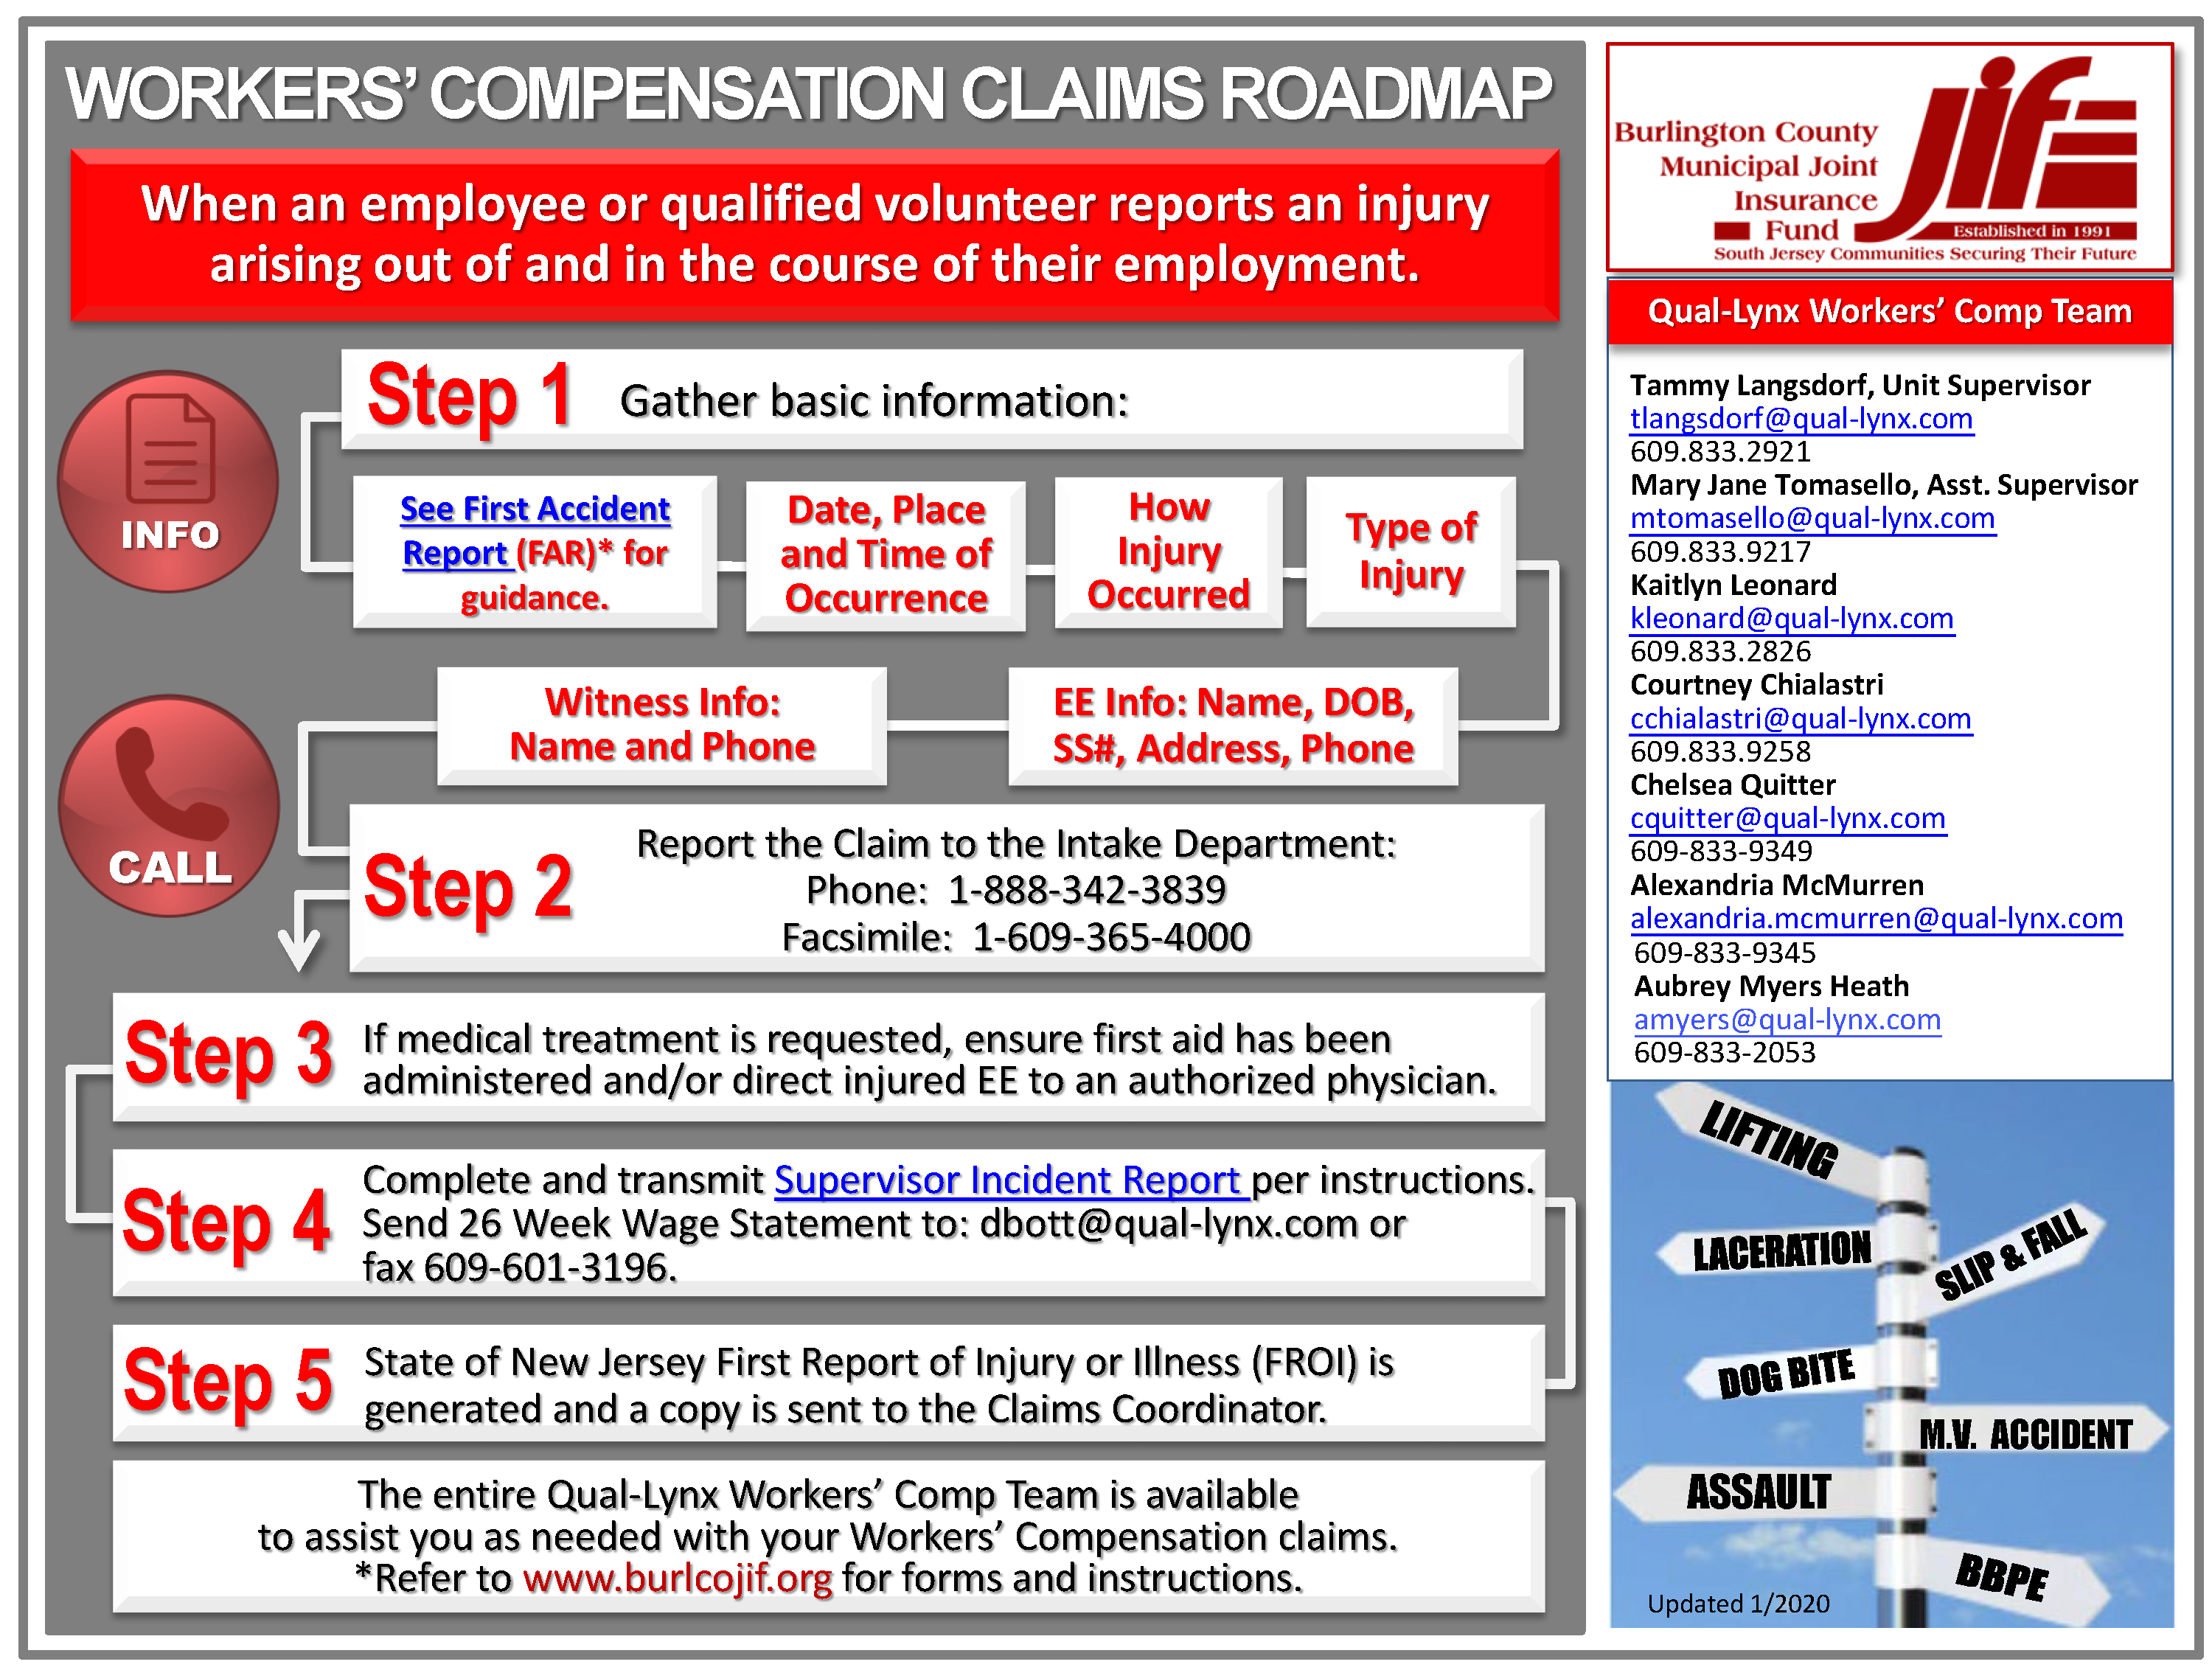 Workers' Compensation Claims Roadmap